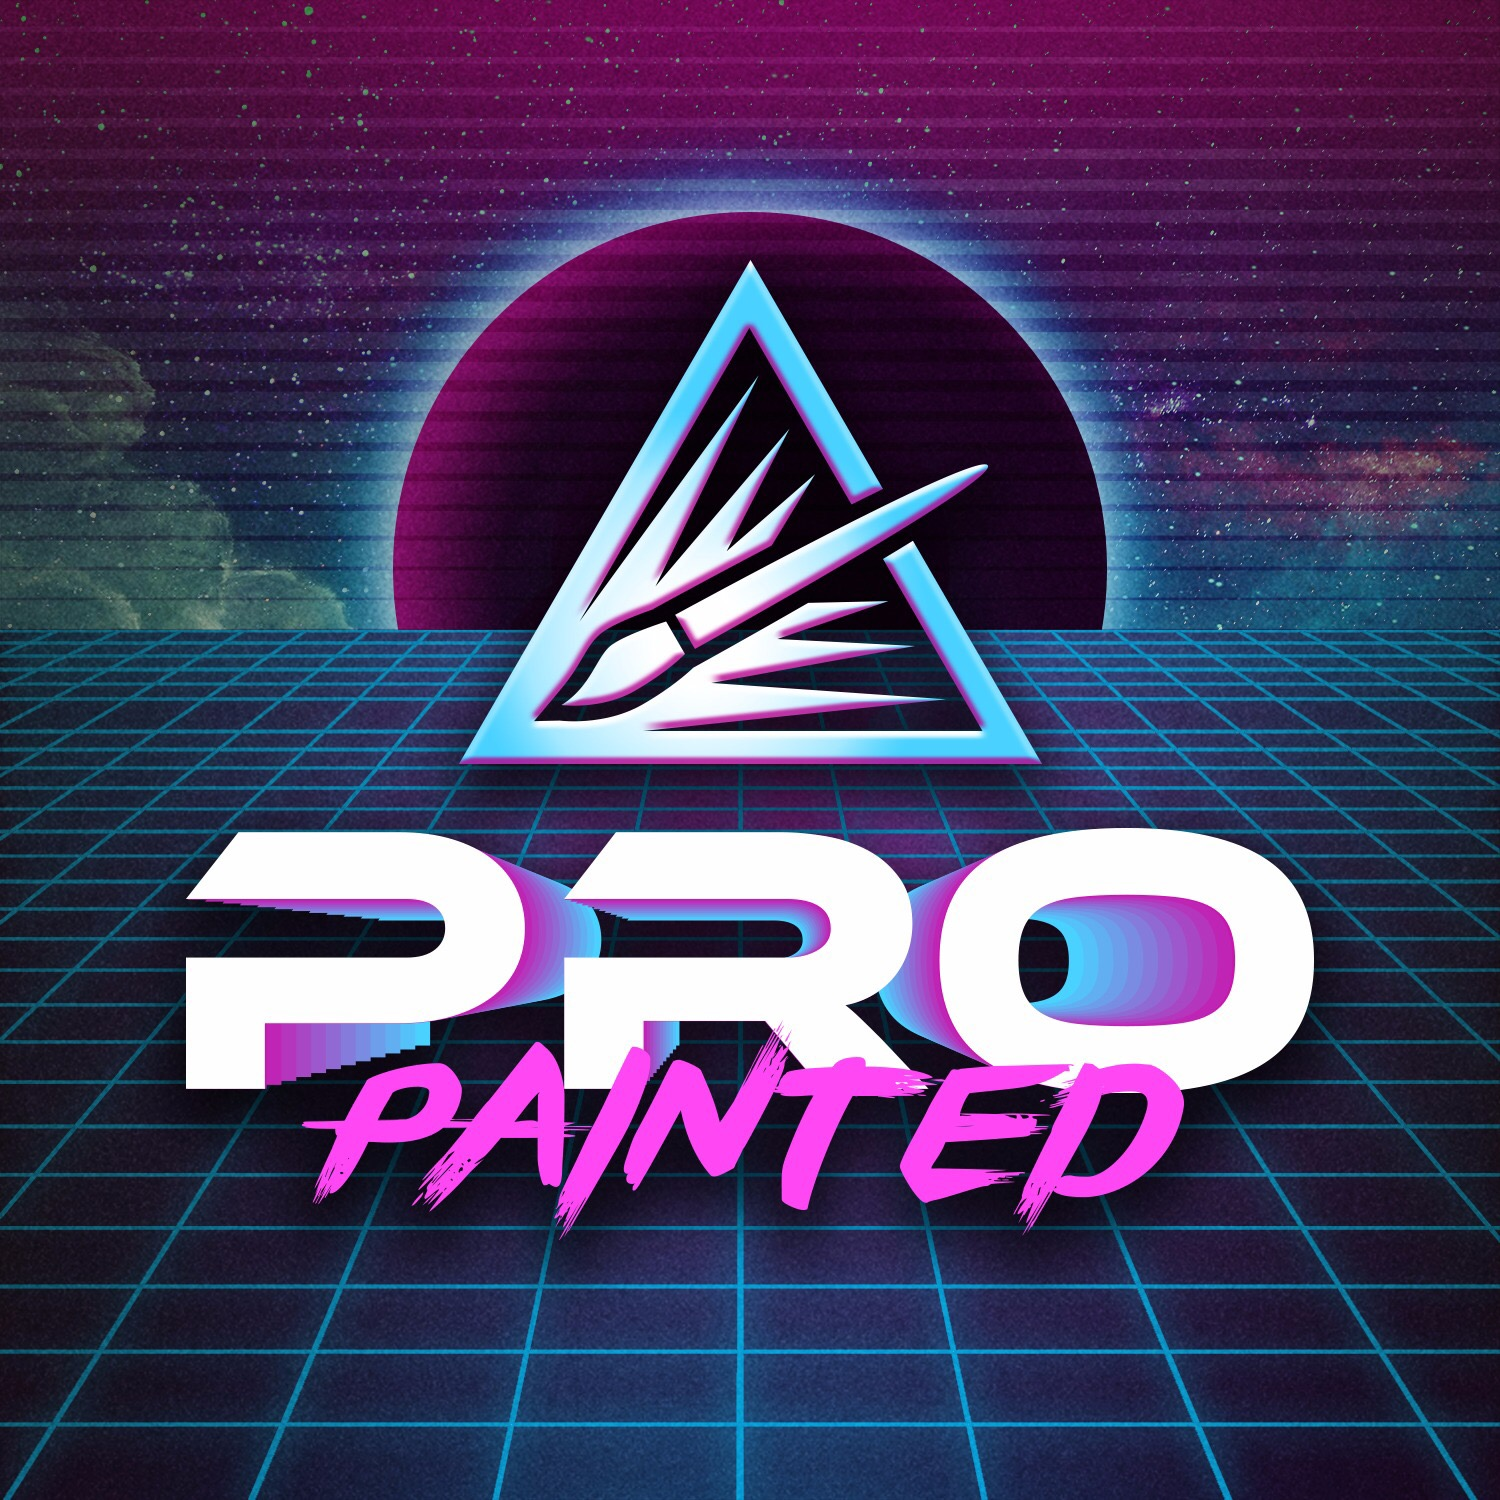 The Pro Painted Podcast